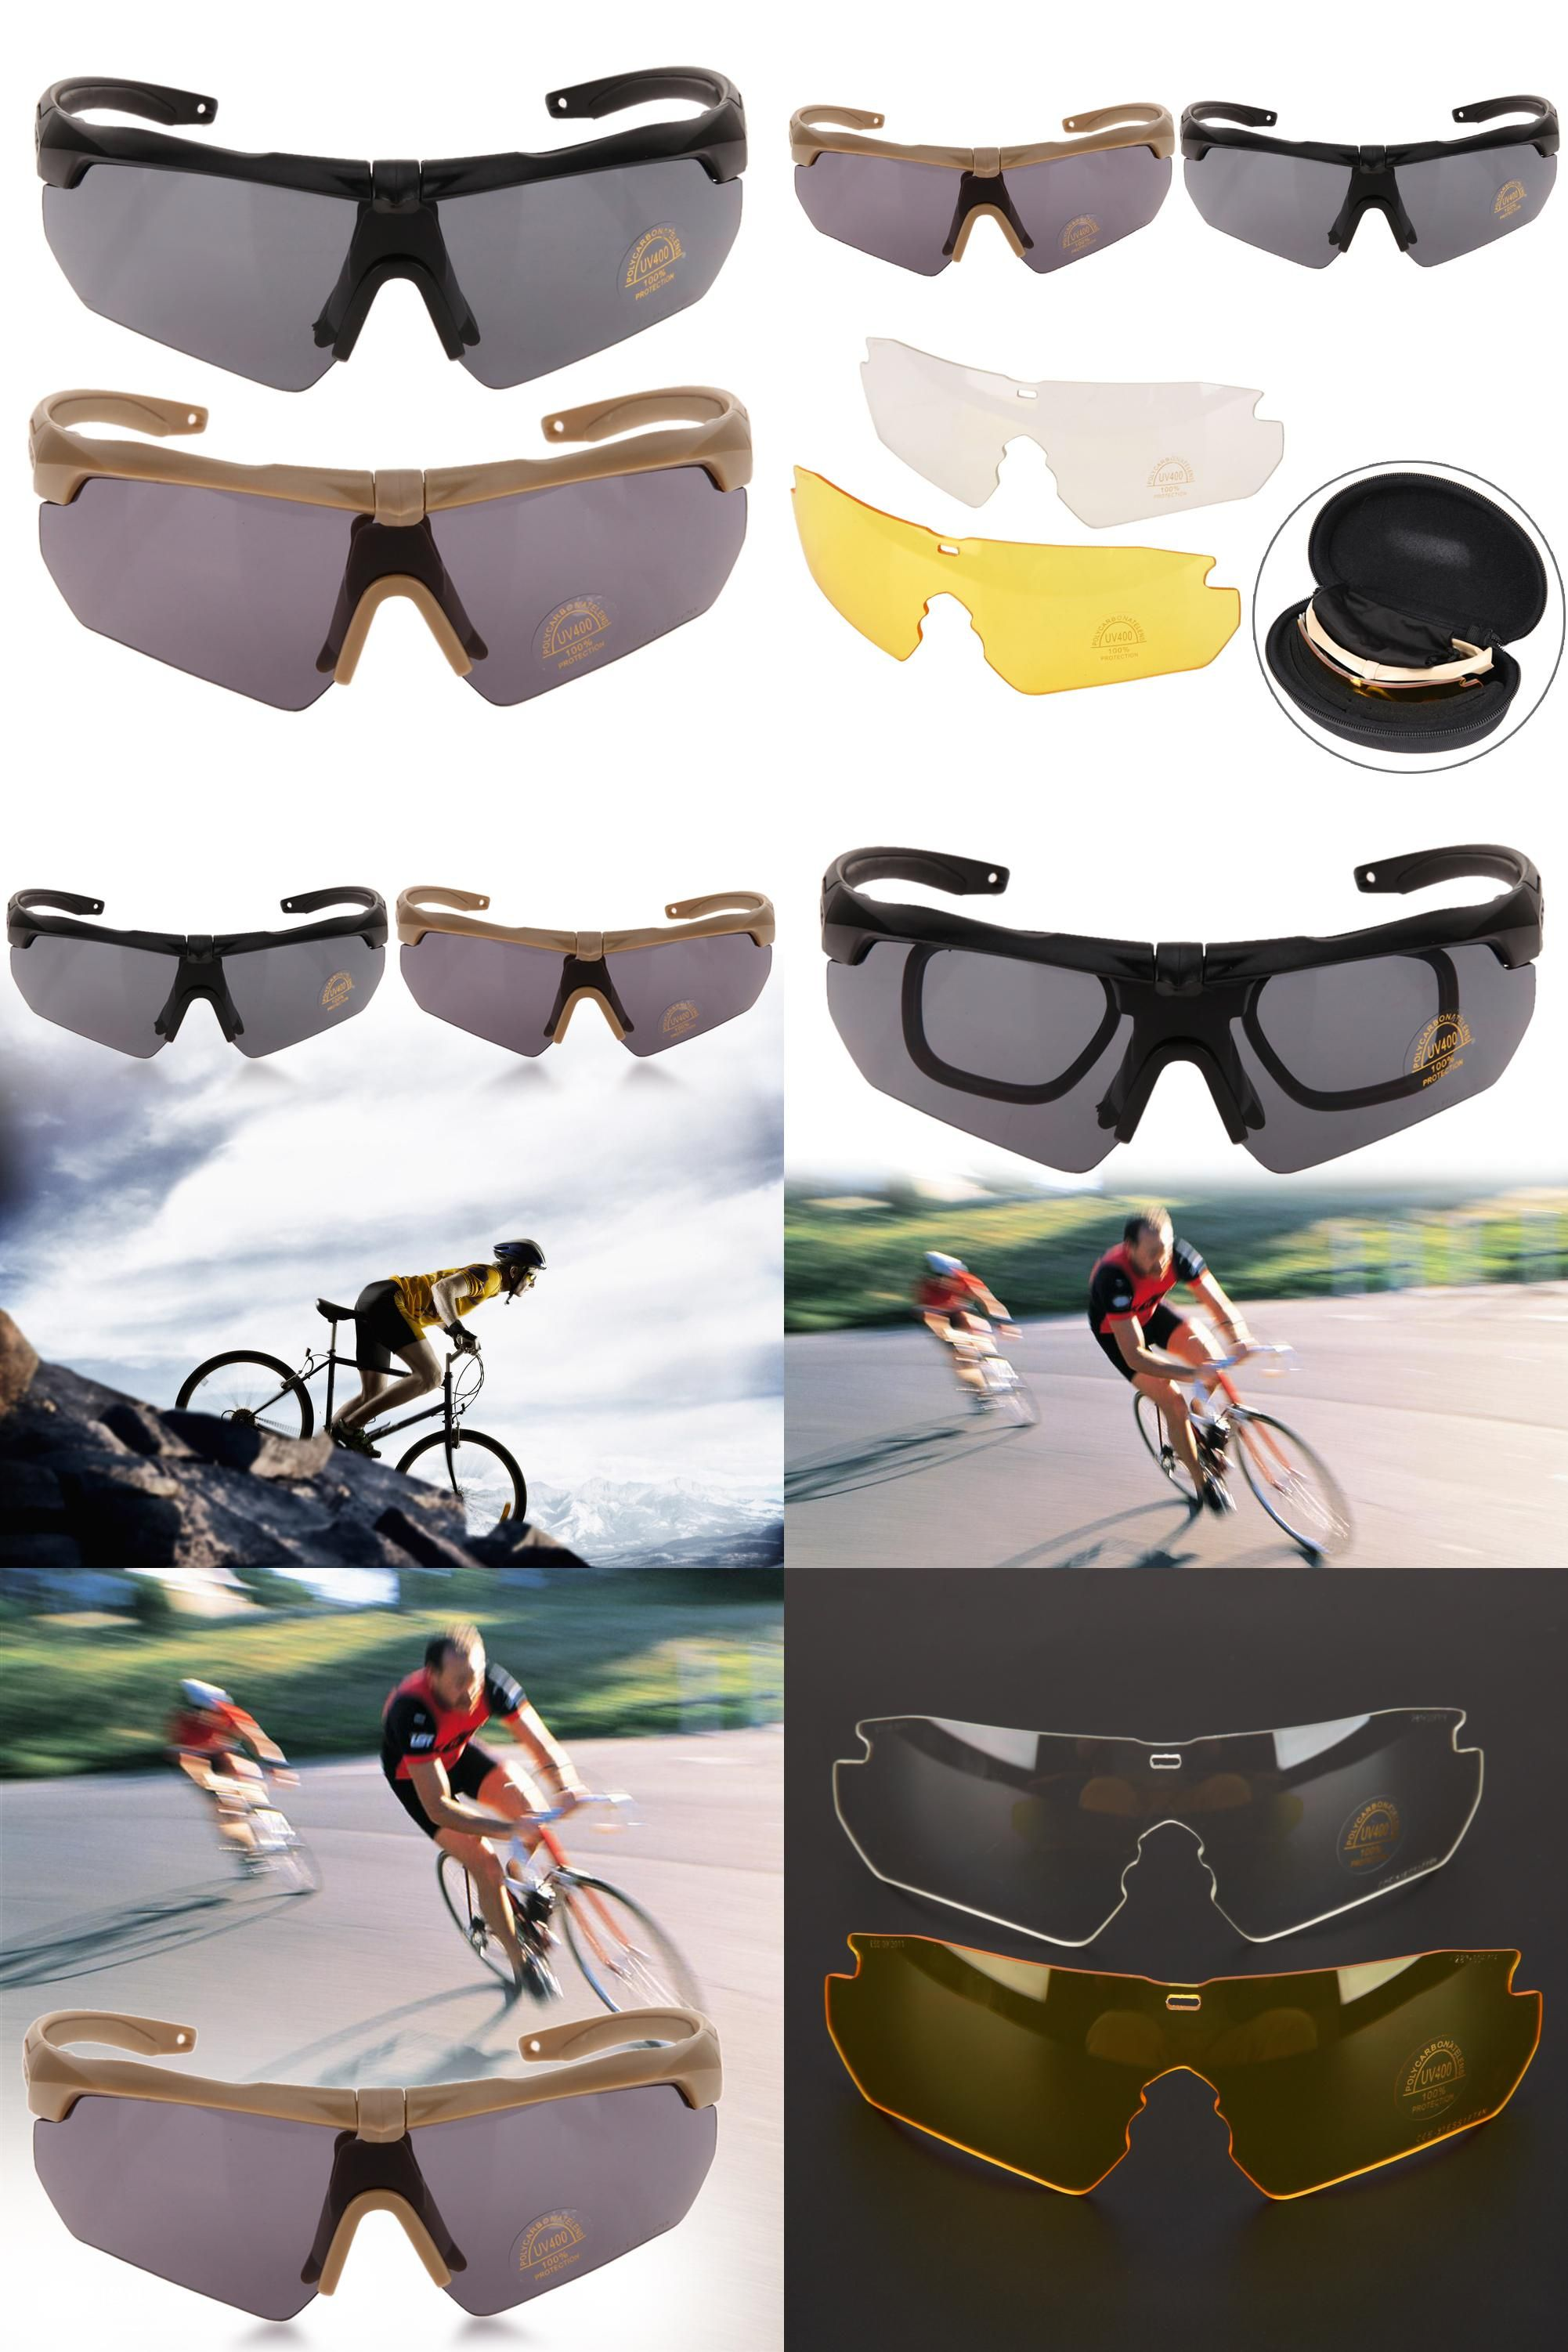 ab47640224  Visit to Buy  Tr90 Military Goggles Polarized Bike Cycling Glasses Eyewear  Outdoor Sports Bicycle